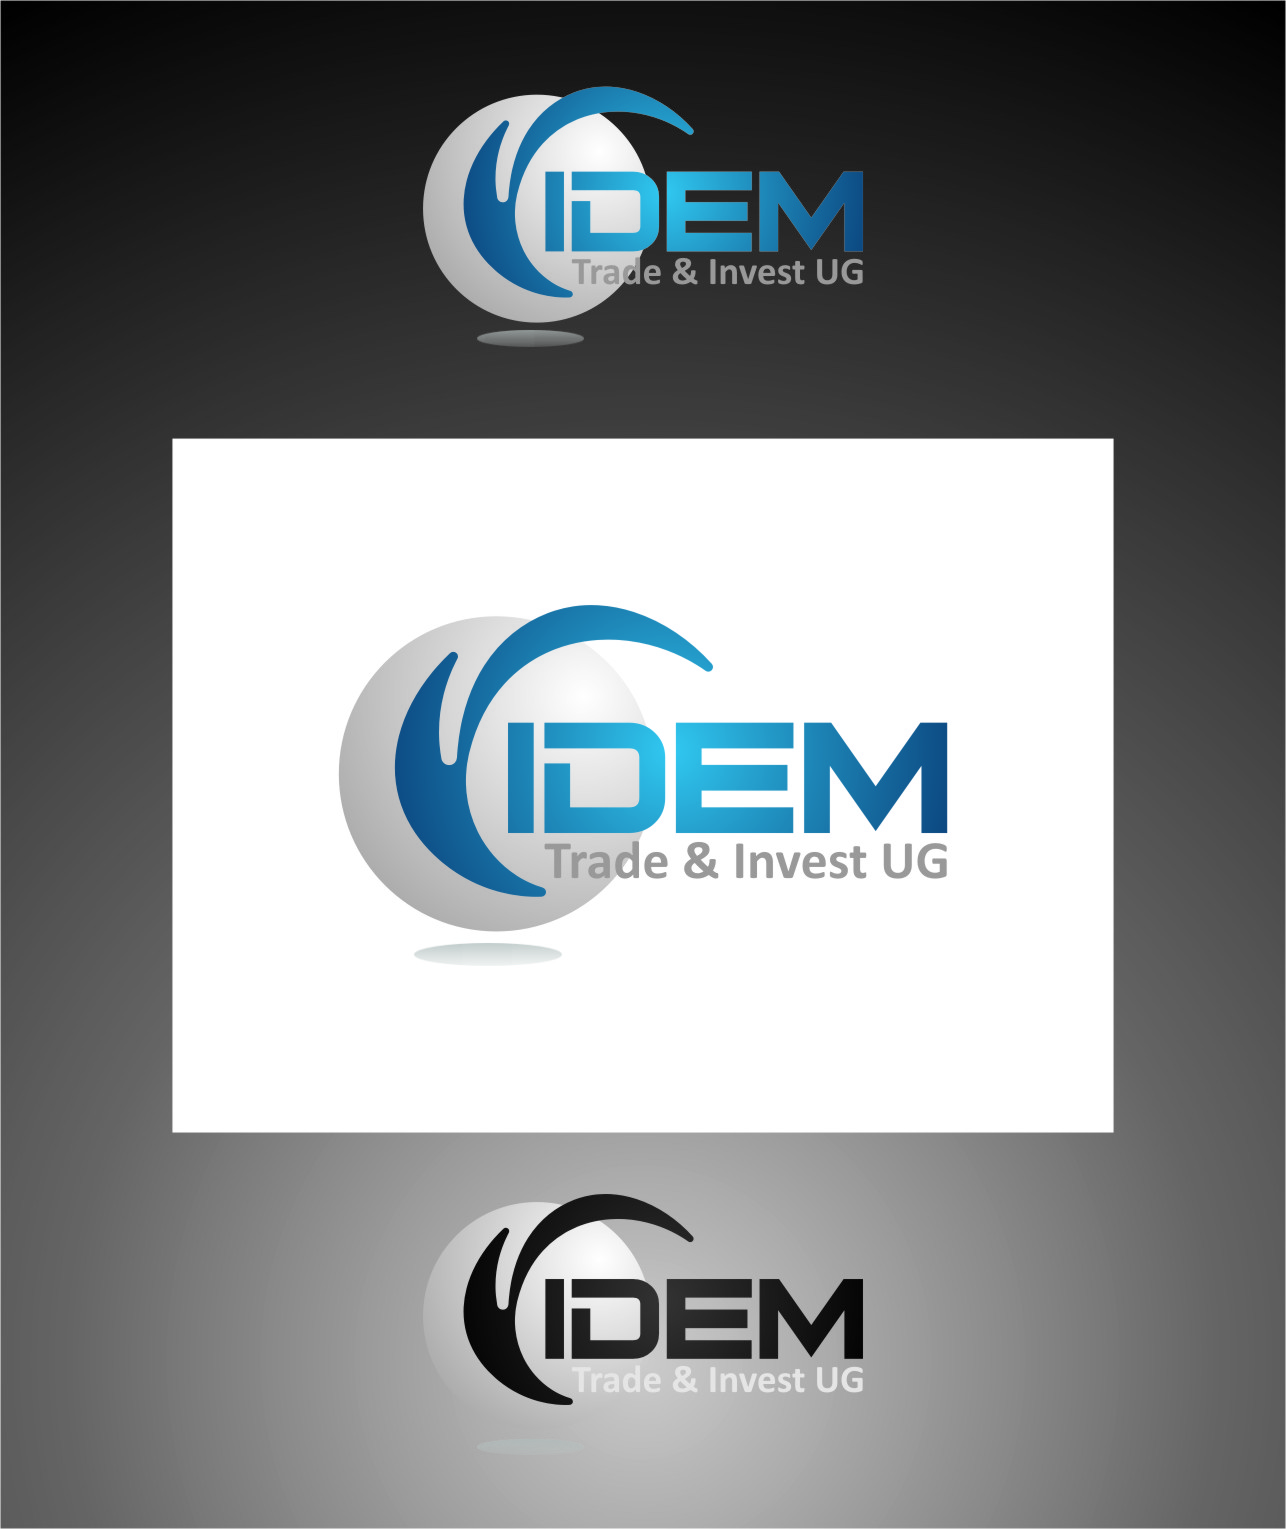 Logo Design by RasYa Muhammad Athaya - Entry No. 309 in the Logo Design Contest Professional Logo Design for FIDEM Trade & Invest UG.